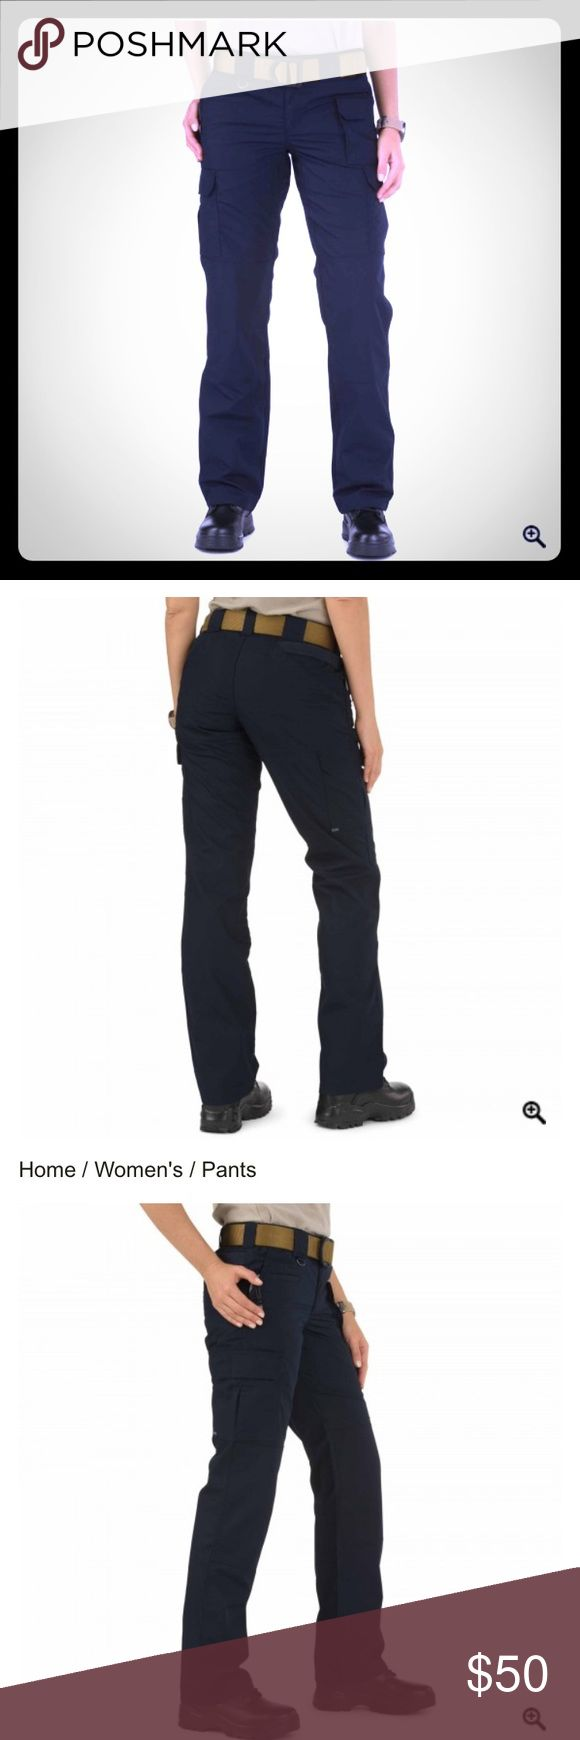 Women's 511 tactical pants Great for hiking or even just daily wear! Never worn. Navy blue! 5.11 Tactical Pants